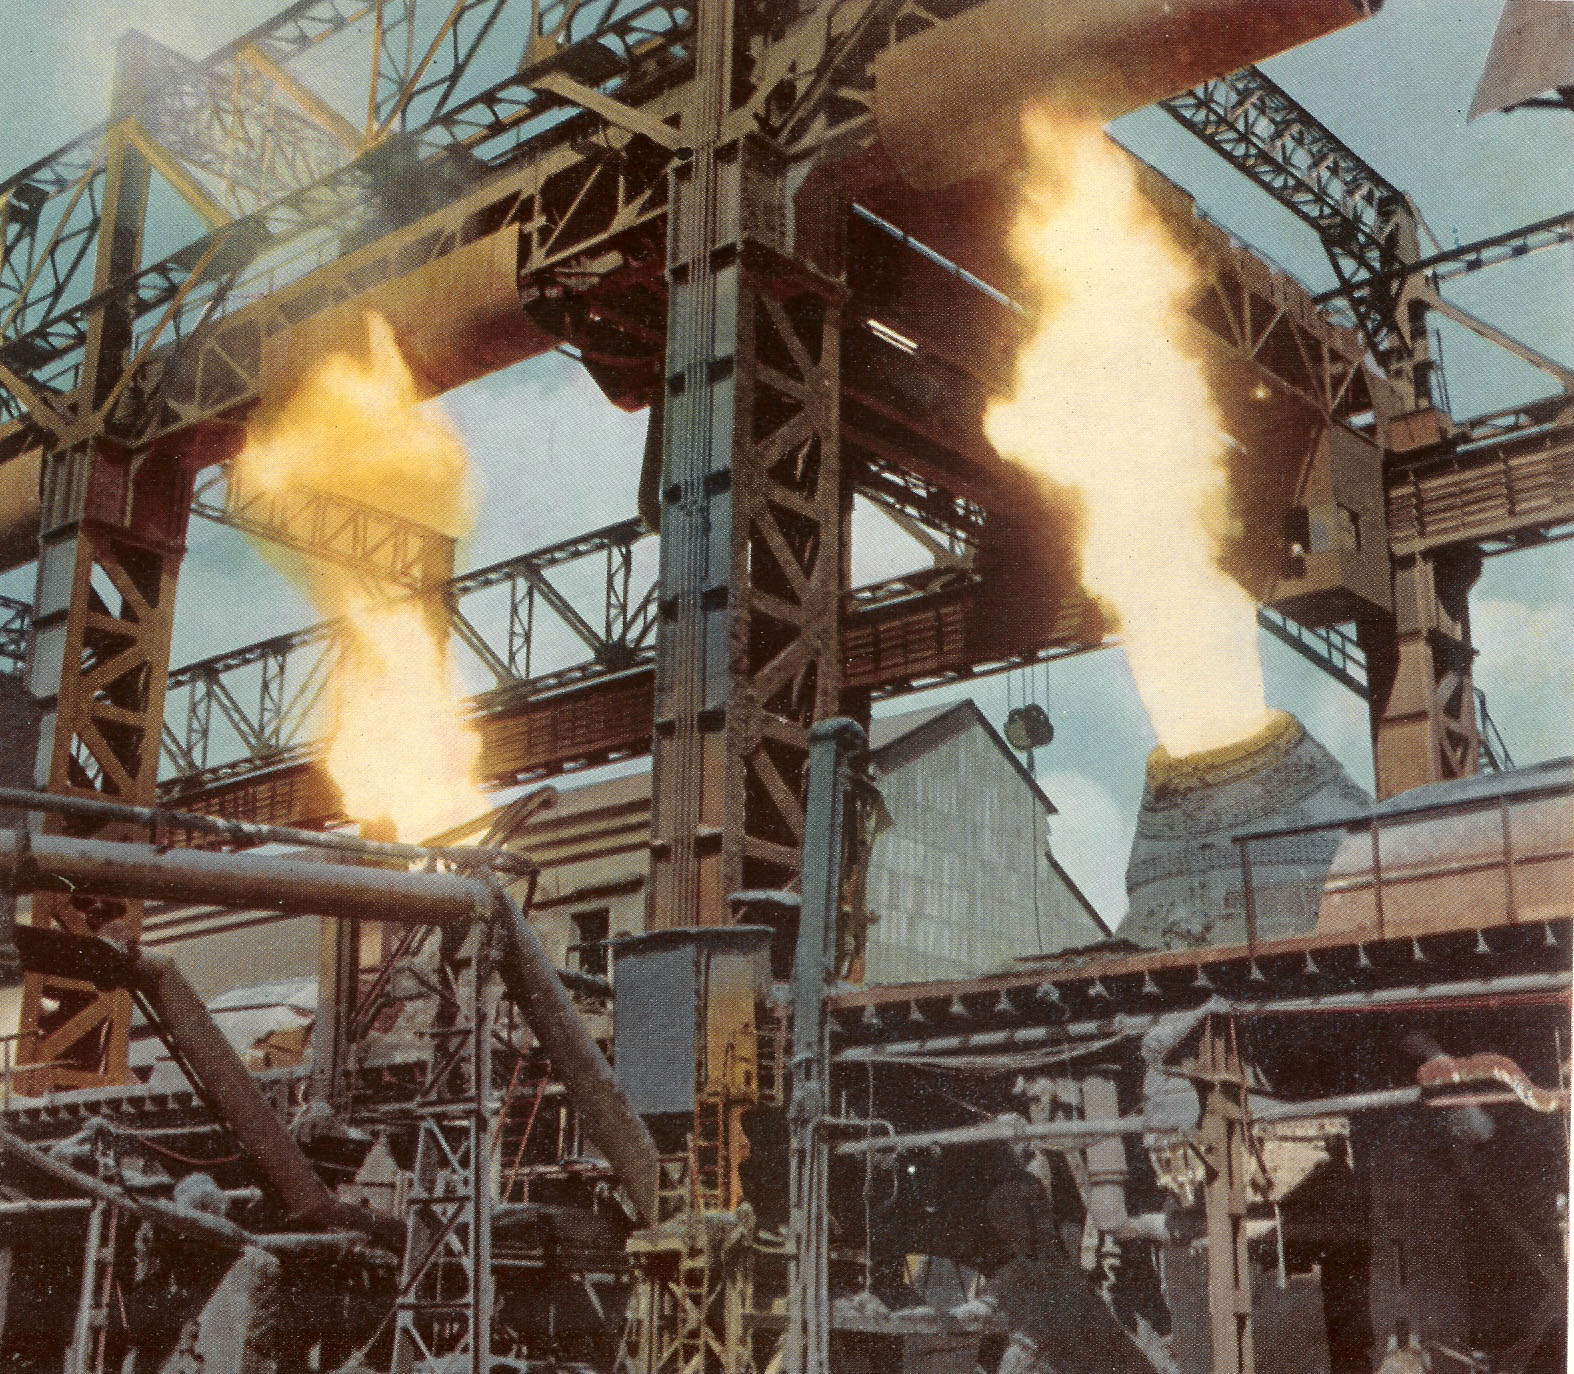 union furnace girls The us steel blast furnace in a birmingham suburb won't just be idled - it'll be shut down permanently on or after nov 17, the pittsburgh company announced monday.